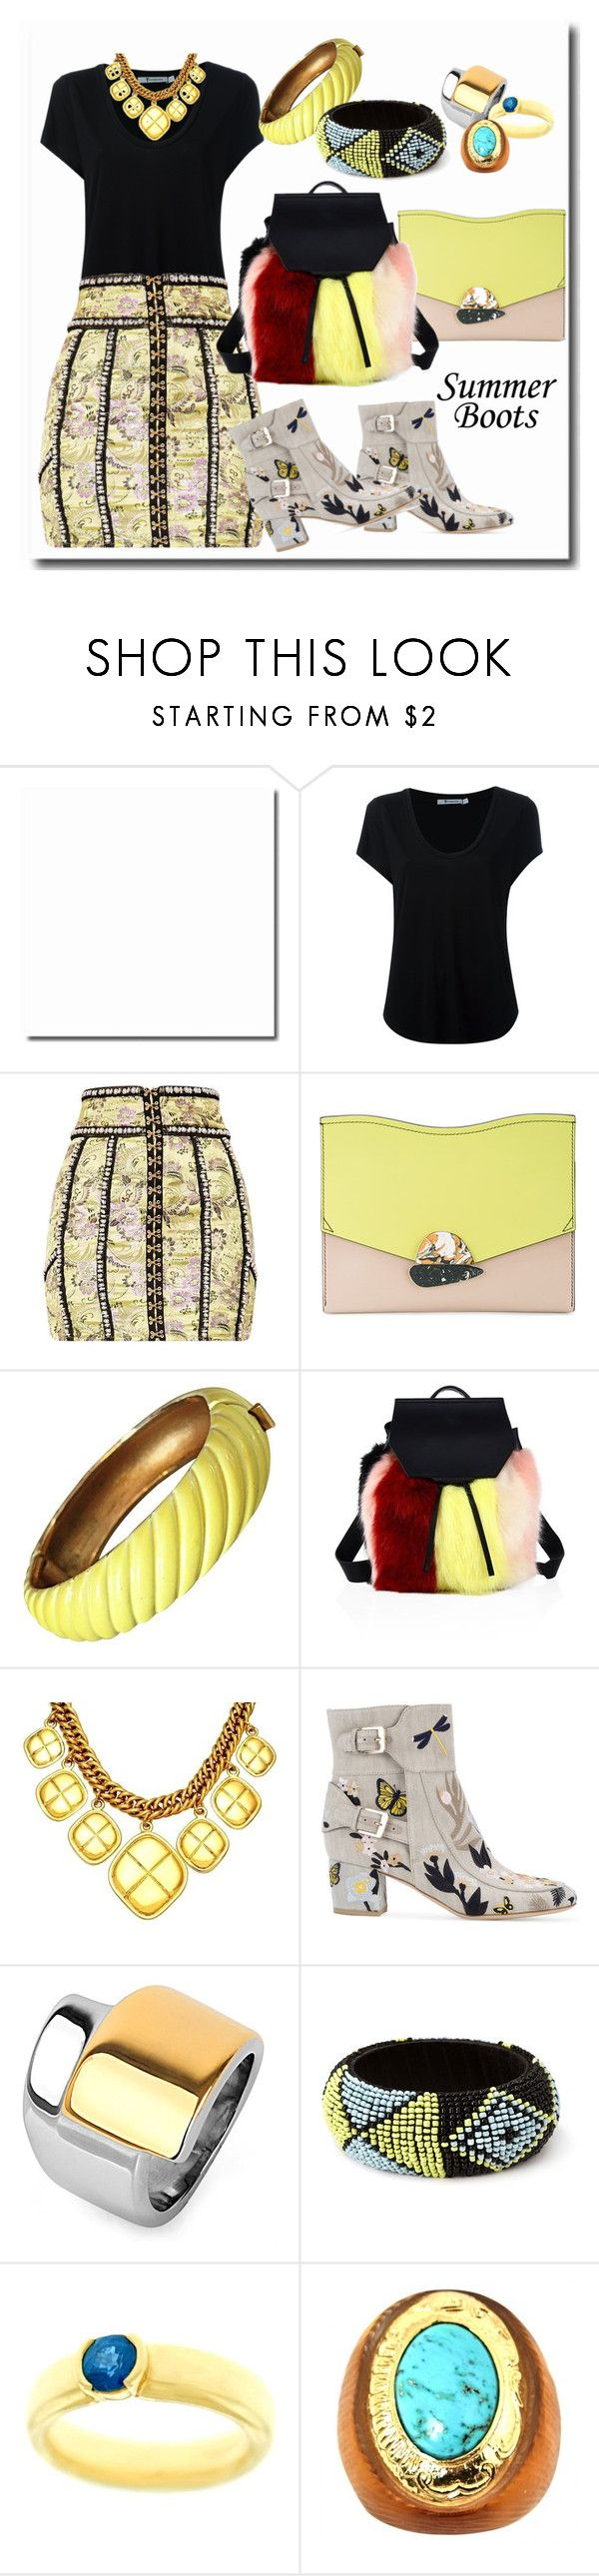 """""""Walk This Way: Summer Booties"""" by kareng-357 ❤ liked on Polyvore featuring Alexander Wang, Proenza Schouler, Trifari, Kendall + Kylie, Chanel, Laurence Dacade, West Coast Jewelry, Forever 21, Tiffany & Co. and Alexis Bittar"""